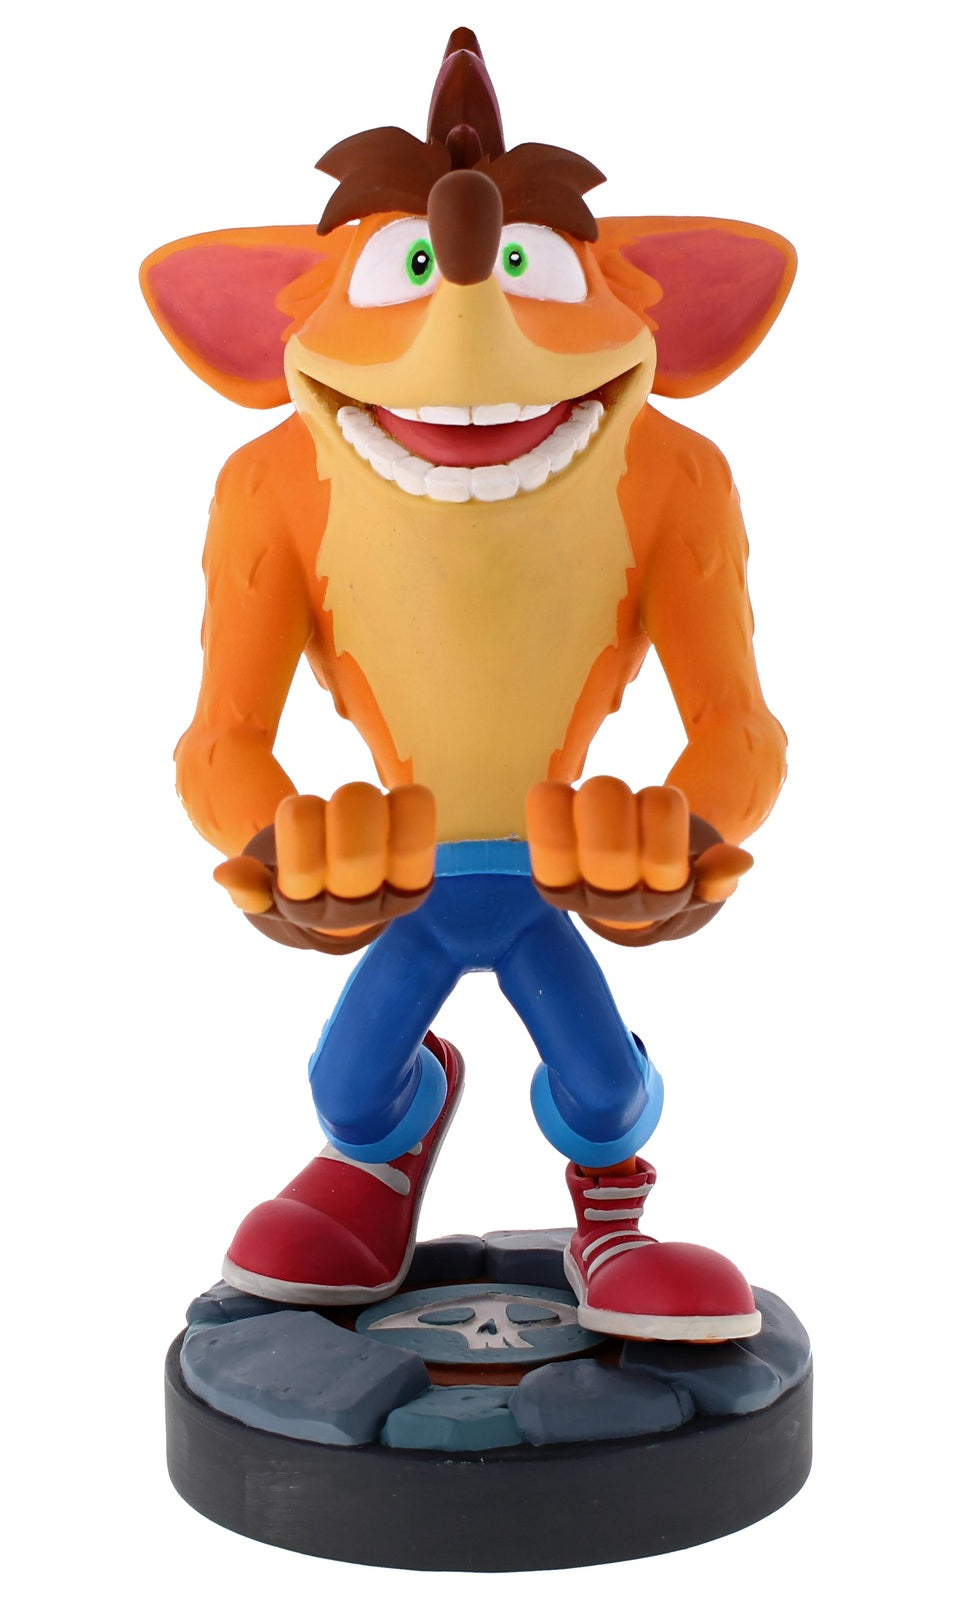 Cable Guy Controller Holder - Crash Bandicoot 4 - PS4